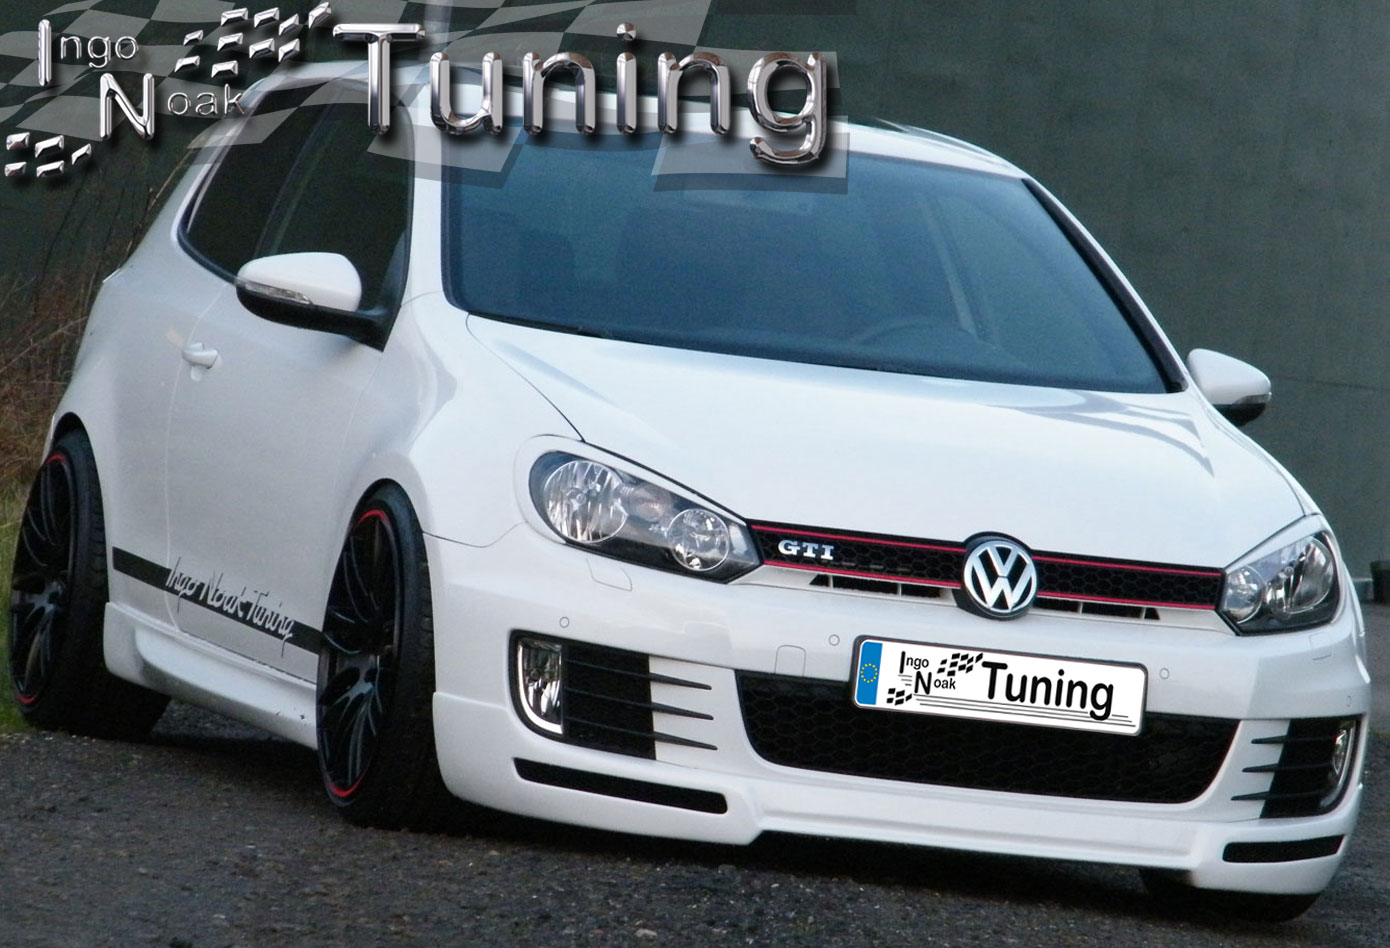 vw golf 6 gti gtd typ 1k frontspoiler frontsch rze spoiler n race ebay. Black Bedroom Furniture Sets. Home Design Ideas